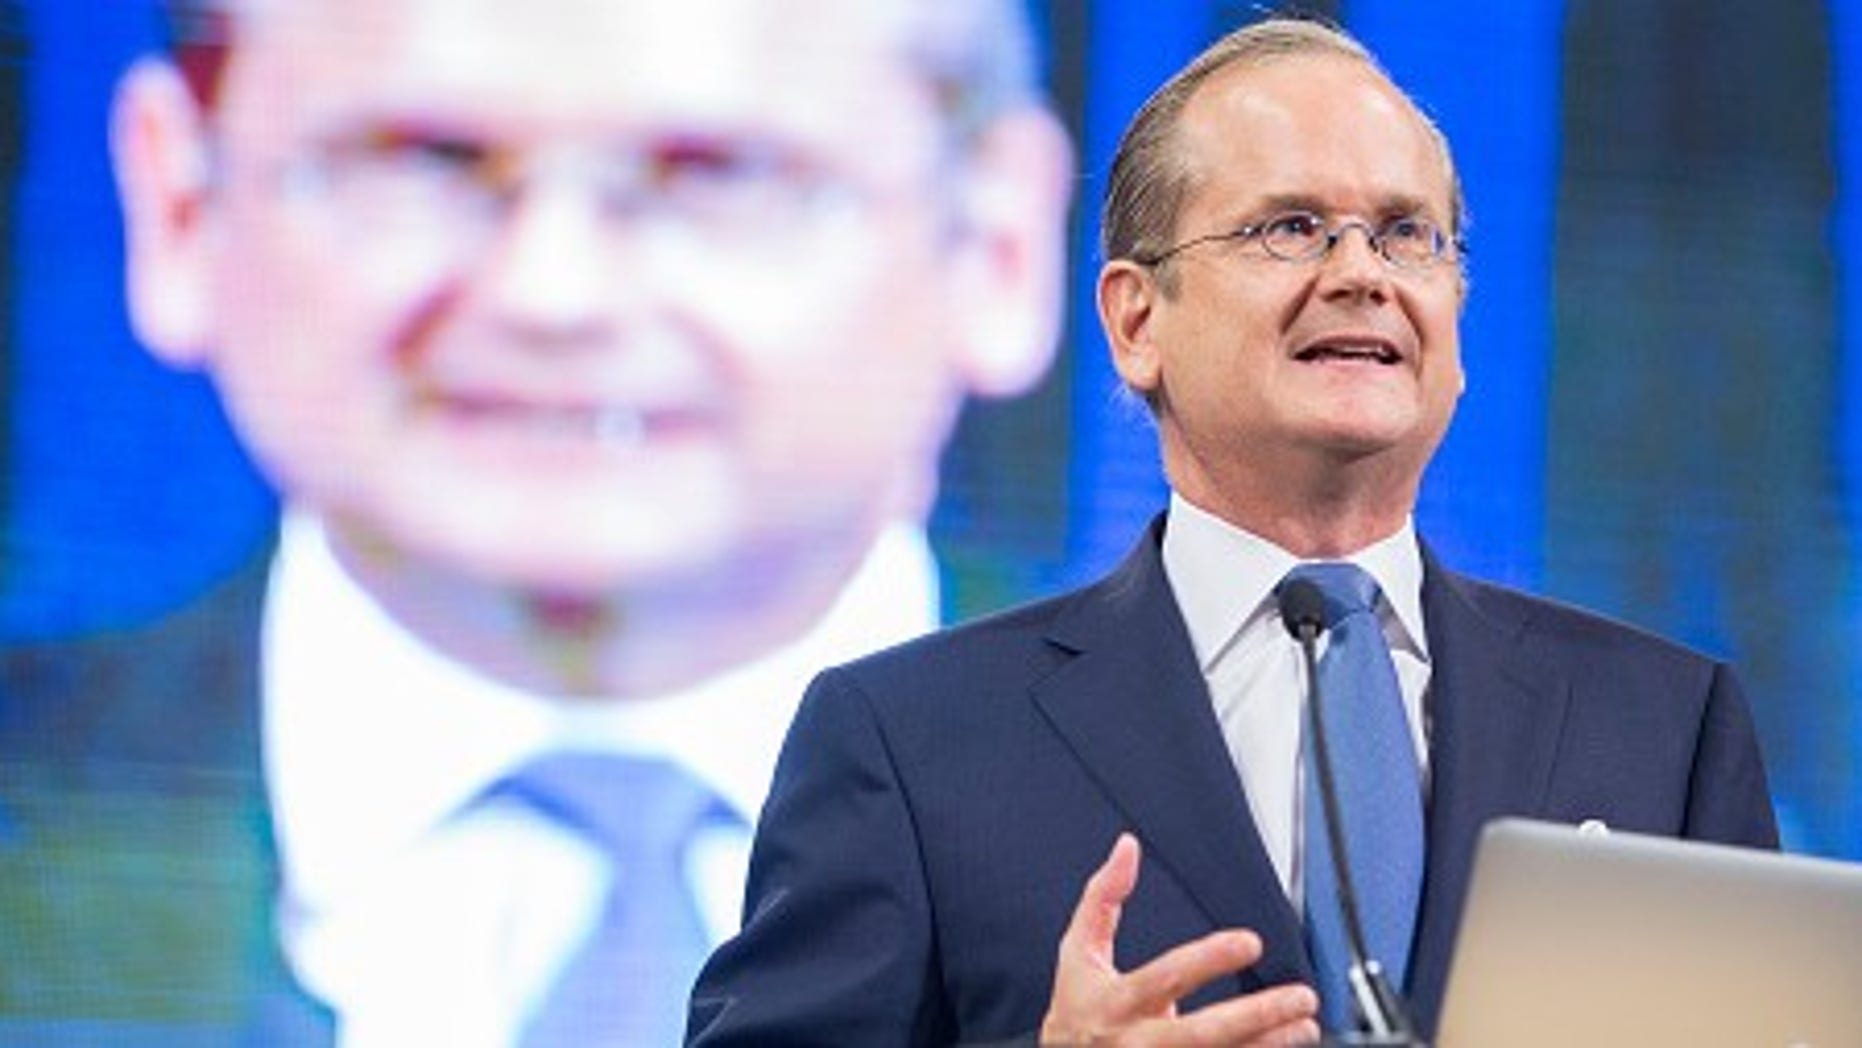 MANCHESTER, NH - SEPTEMBER 19:  Democratic presidential candidate Lawrence Lessig speaks on stage at the New Hampshire Democratic Party State Convention on September 19, 2015 in Manchester, New Hampshire. Five Democratic presidential candidates are all expected to address the crowd inside the Verizon Wireless Arena.  (Photo by Scott Eisen/Getty Images)